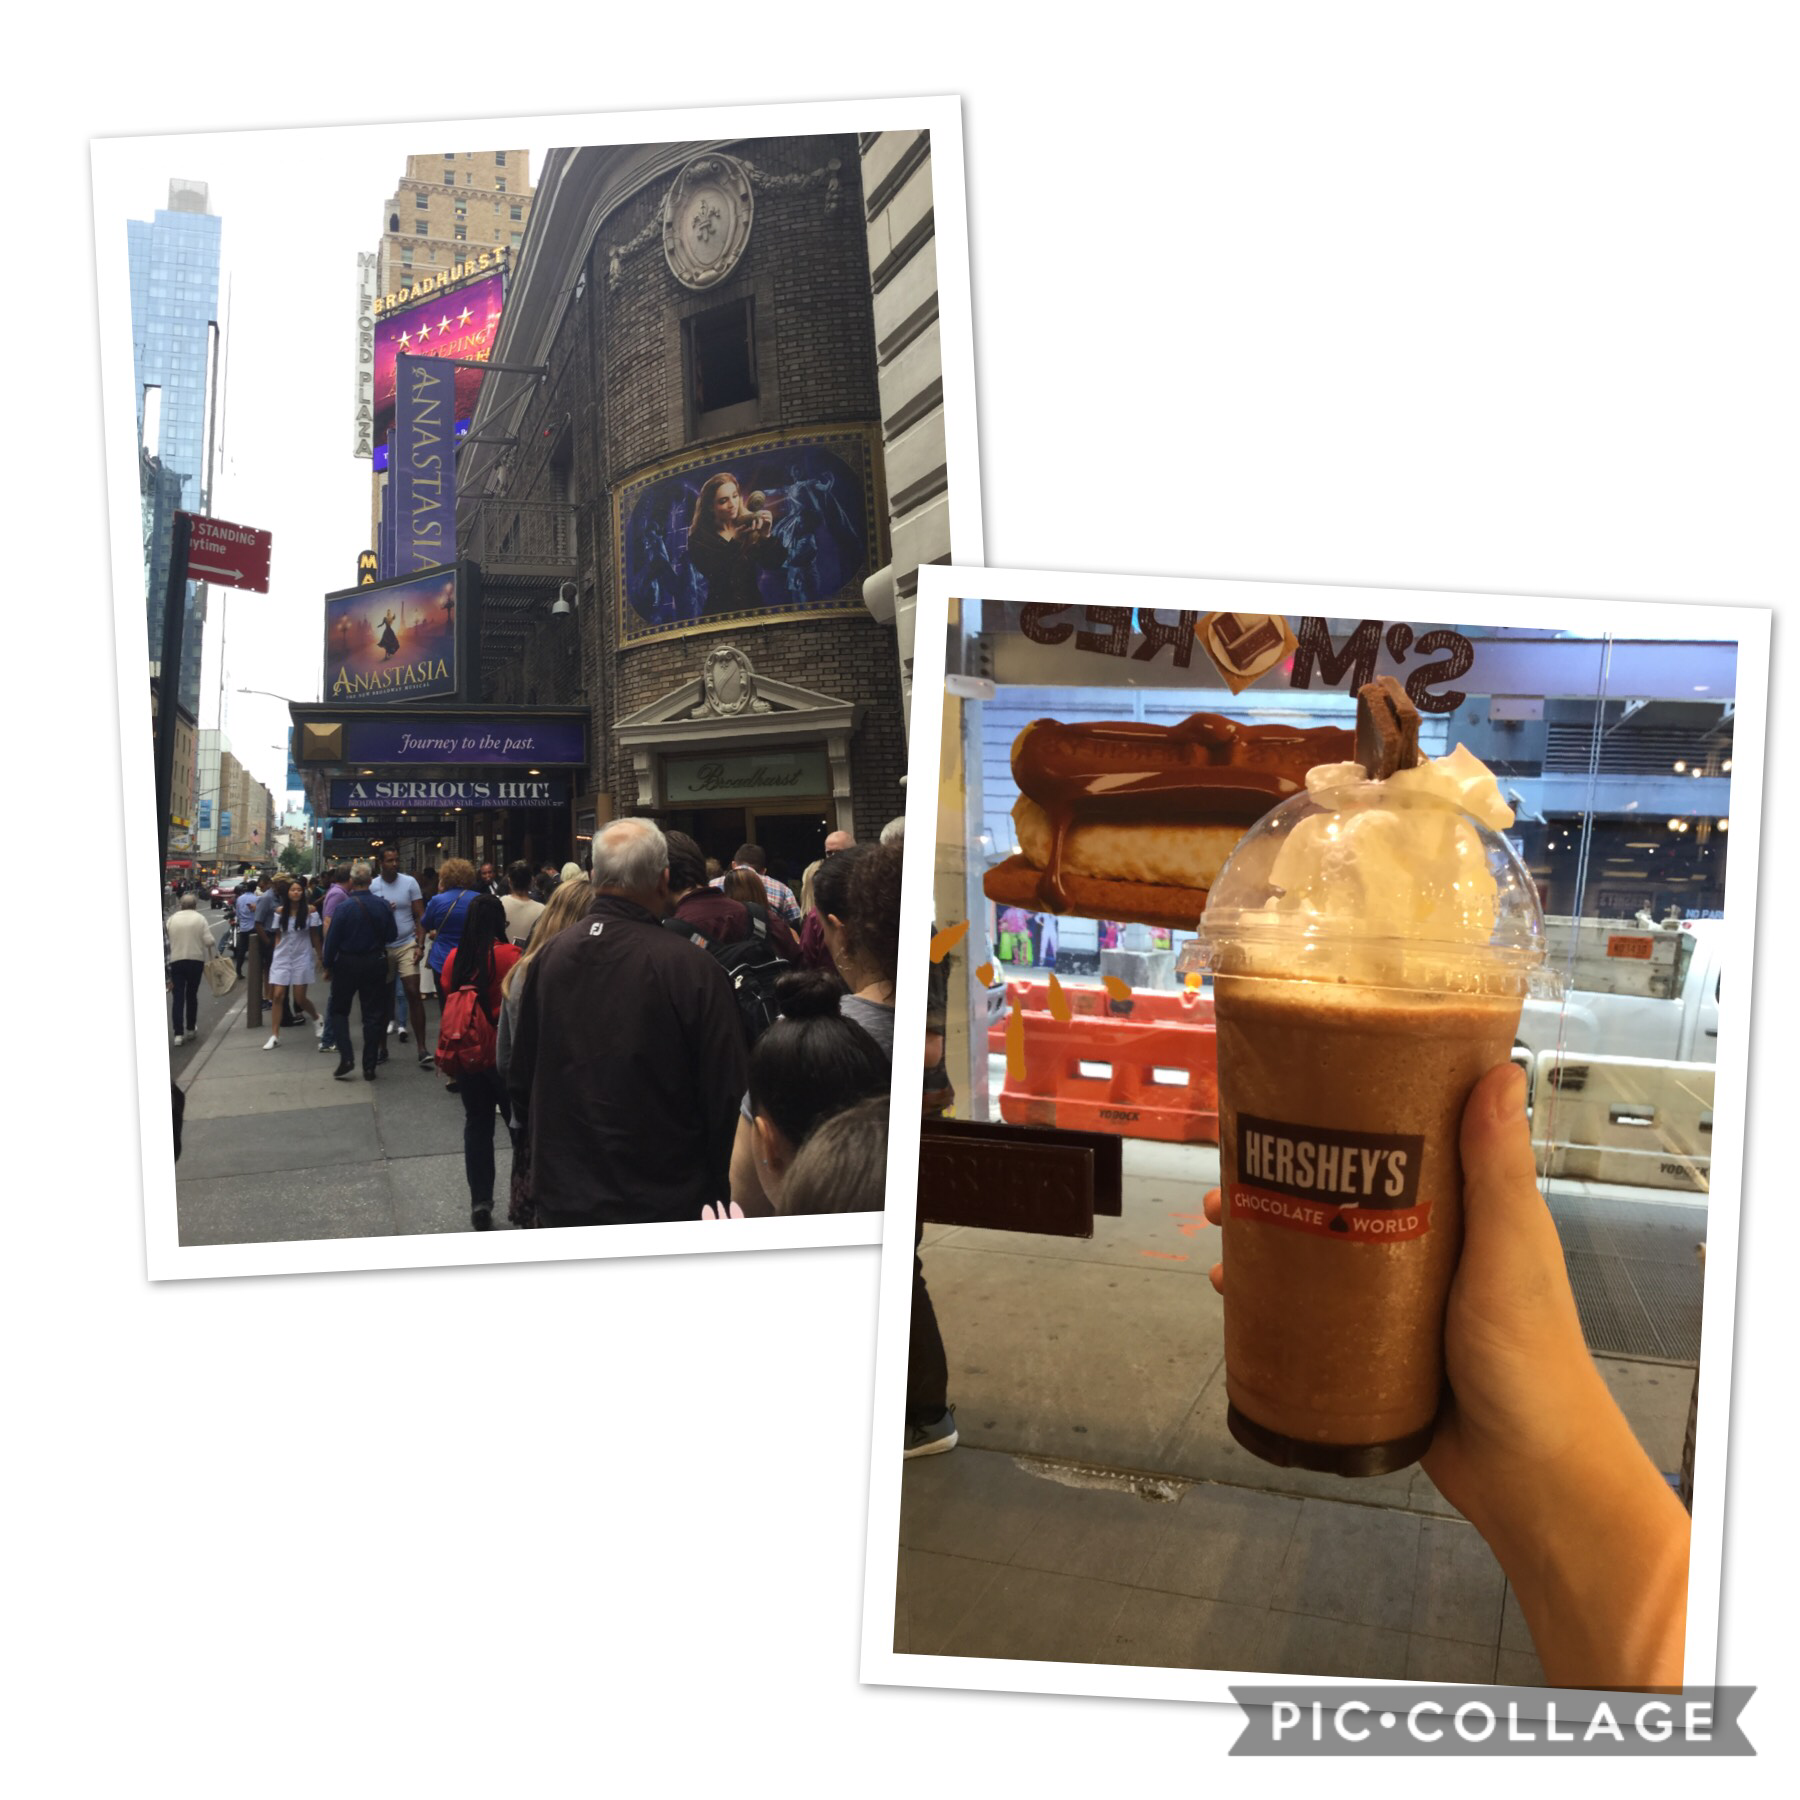 My day today was great... Broadway and frozen hot chocolate